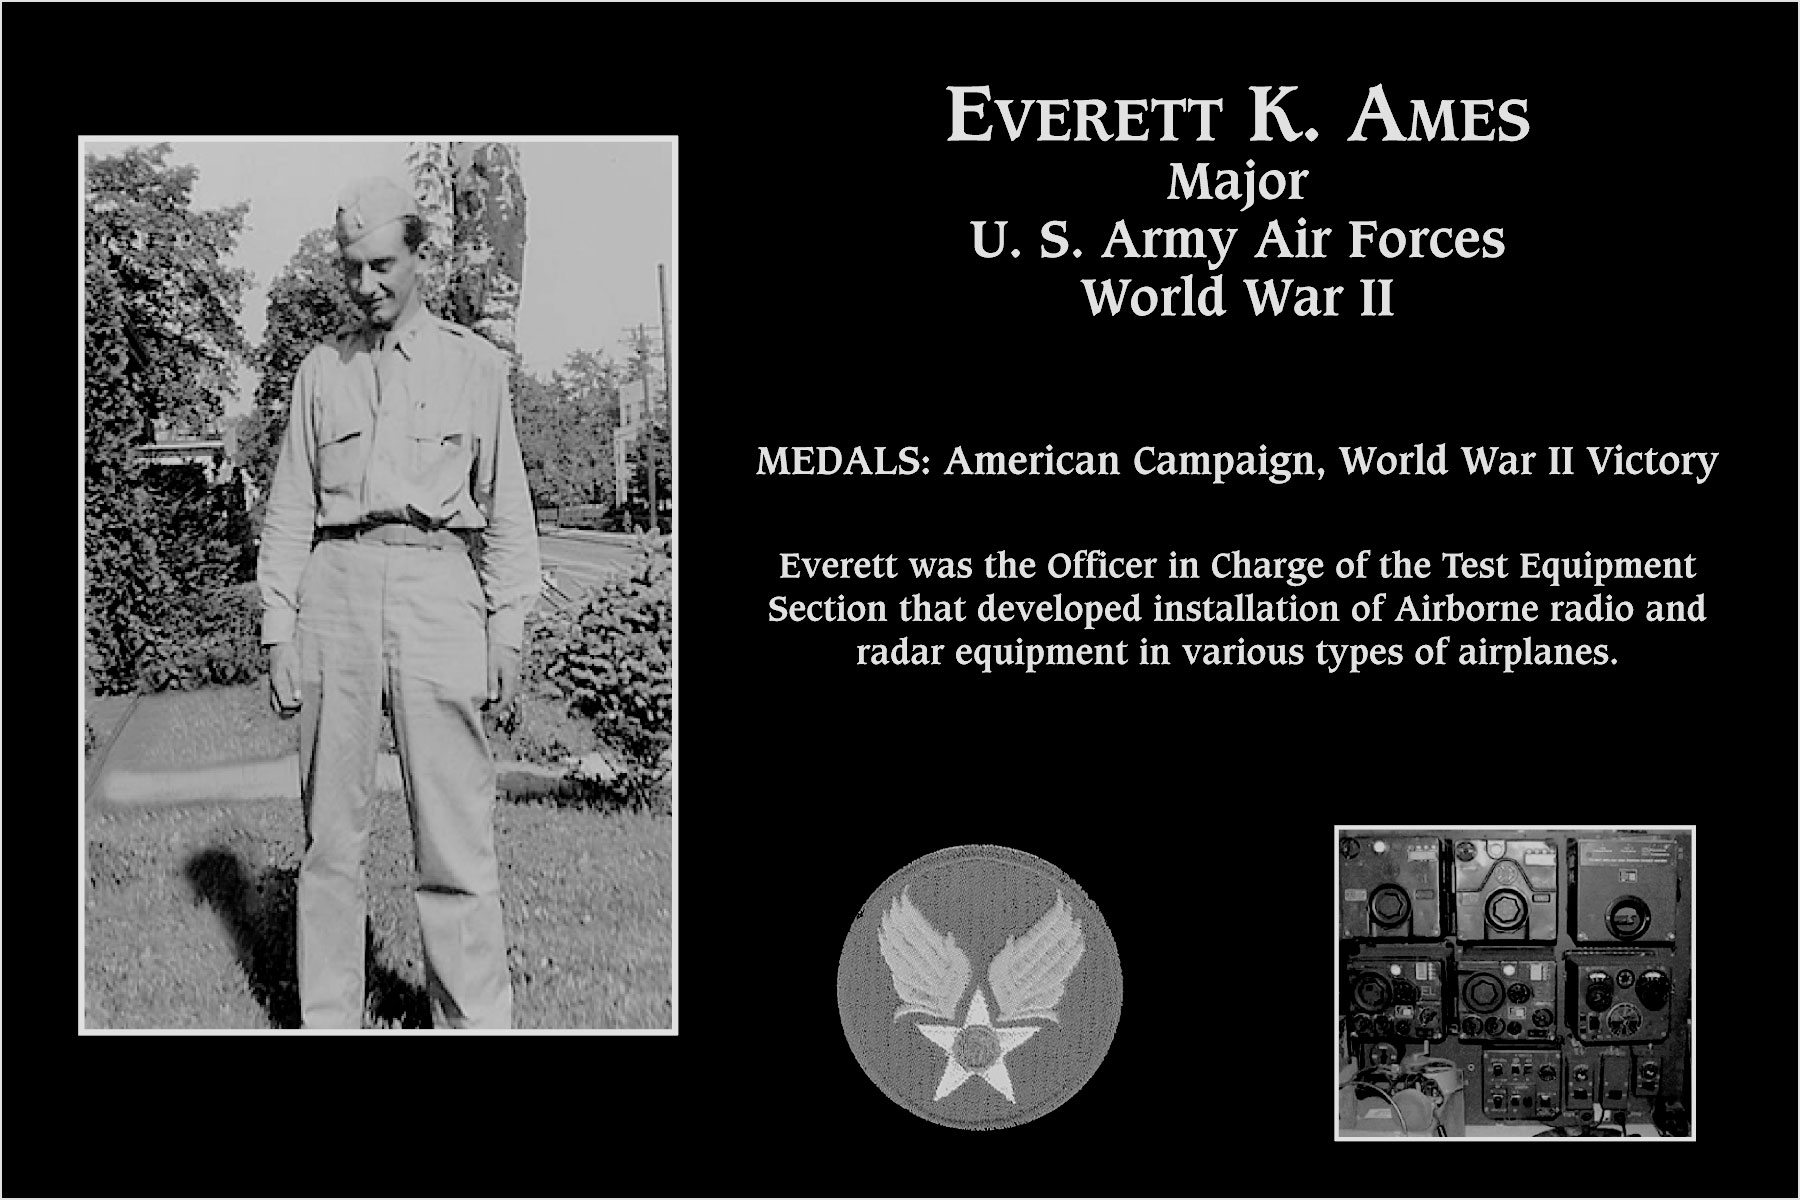 Everett K. Ames